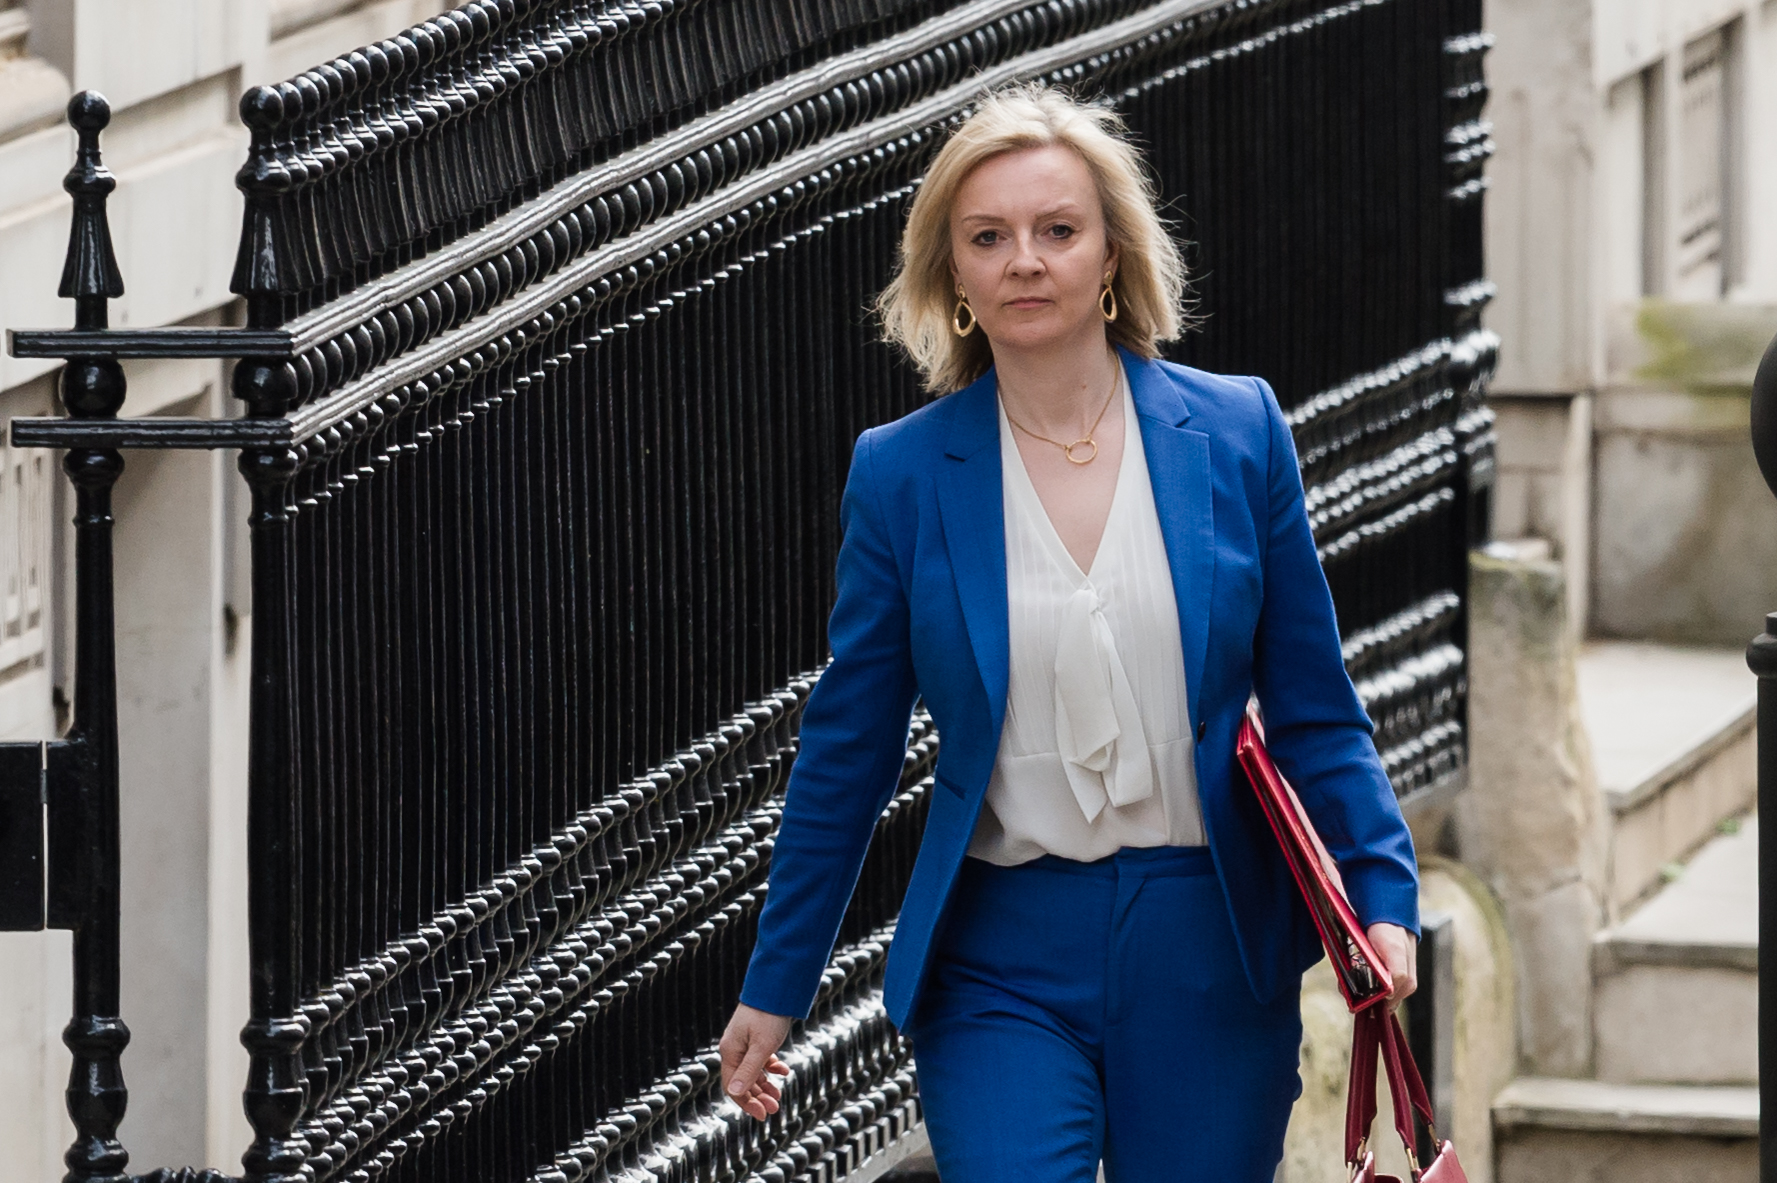 Minister for Women and Equalities Liz Truss